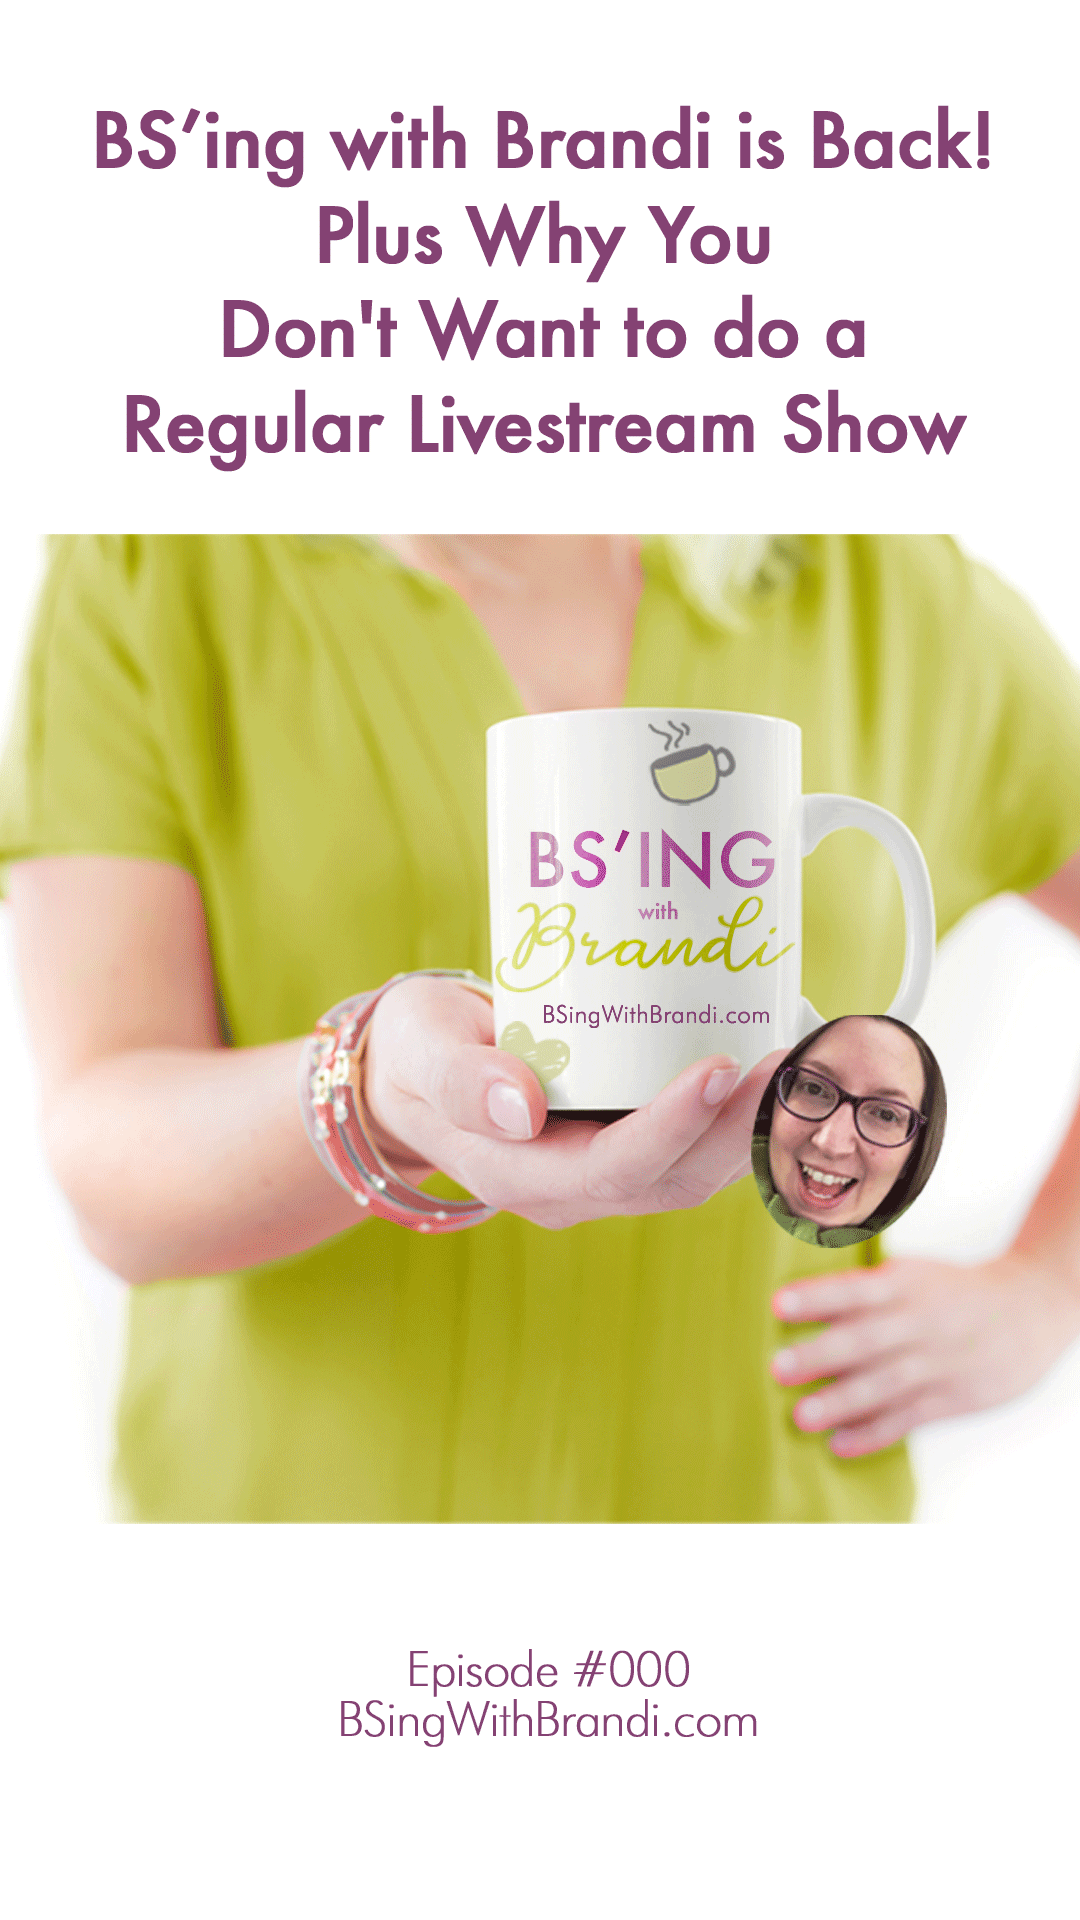 Want to know what BS'ing was, why it went away, and why it's coming back? This will answer all of your questions.  Oh, and there are some great tips about why you might not want to do a regular Facebook Live show :)